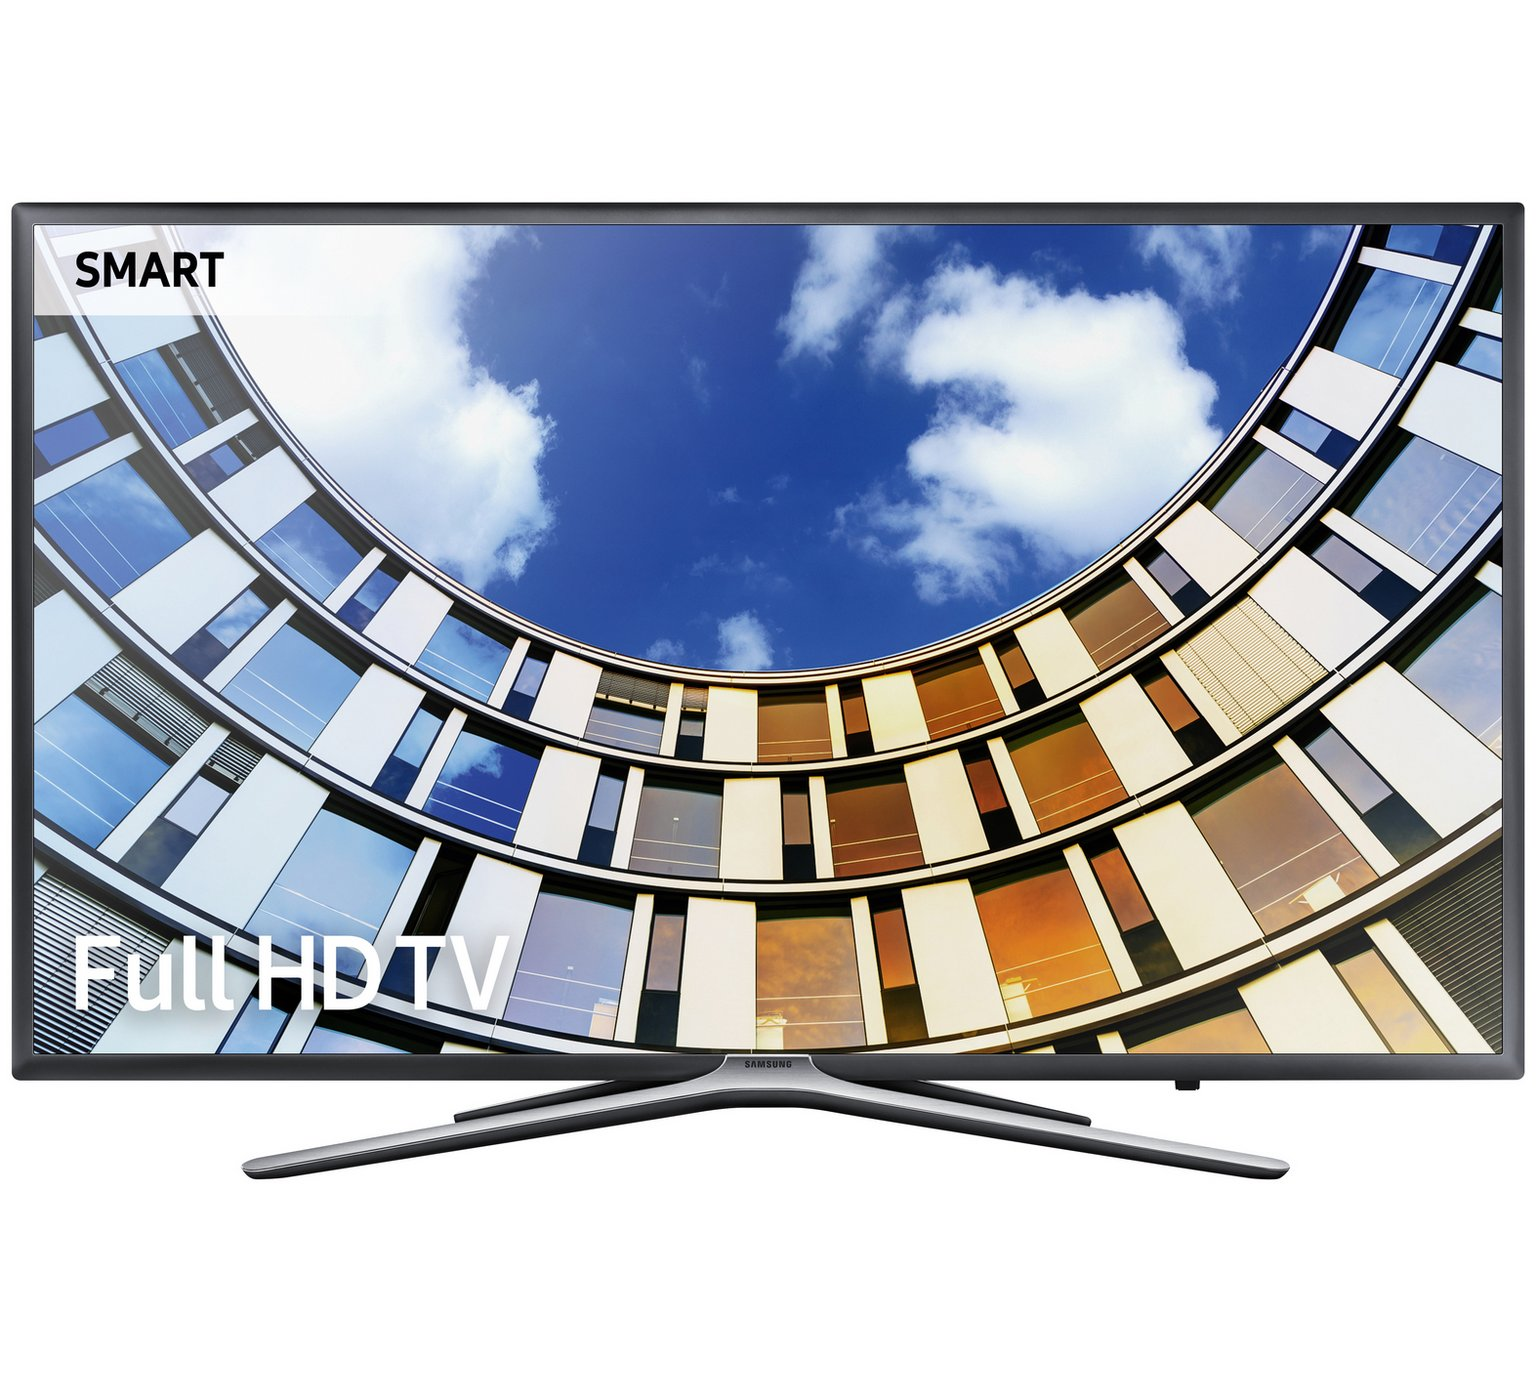 Samsung 32M5520 32 Inch Smart Full HD TV